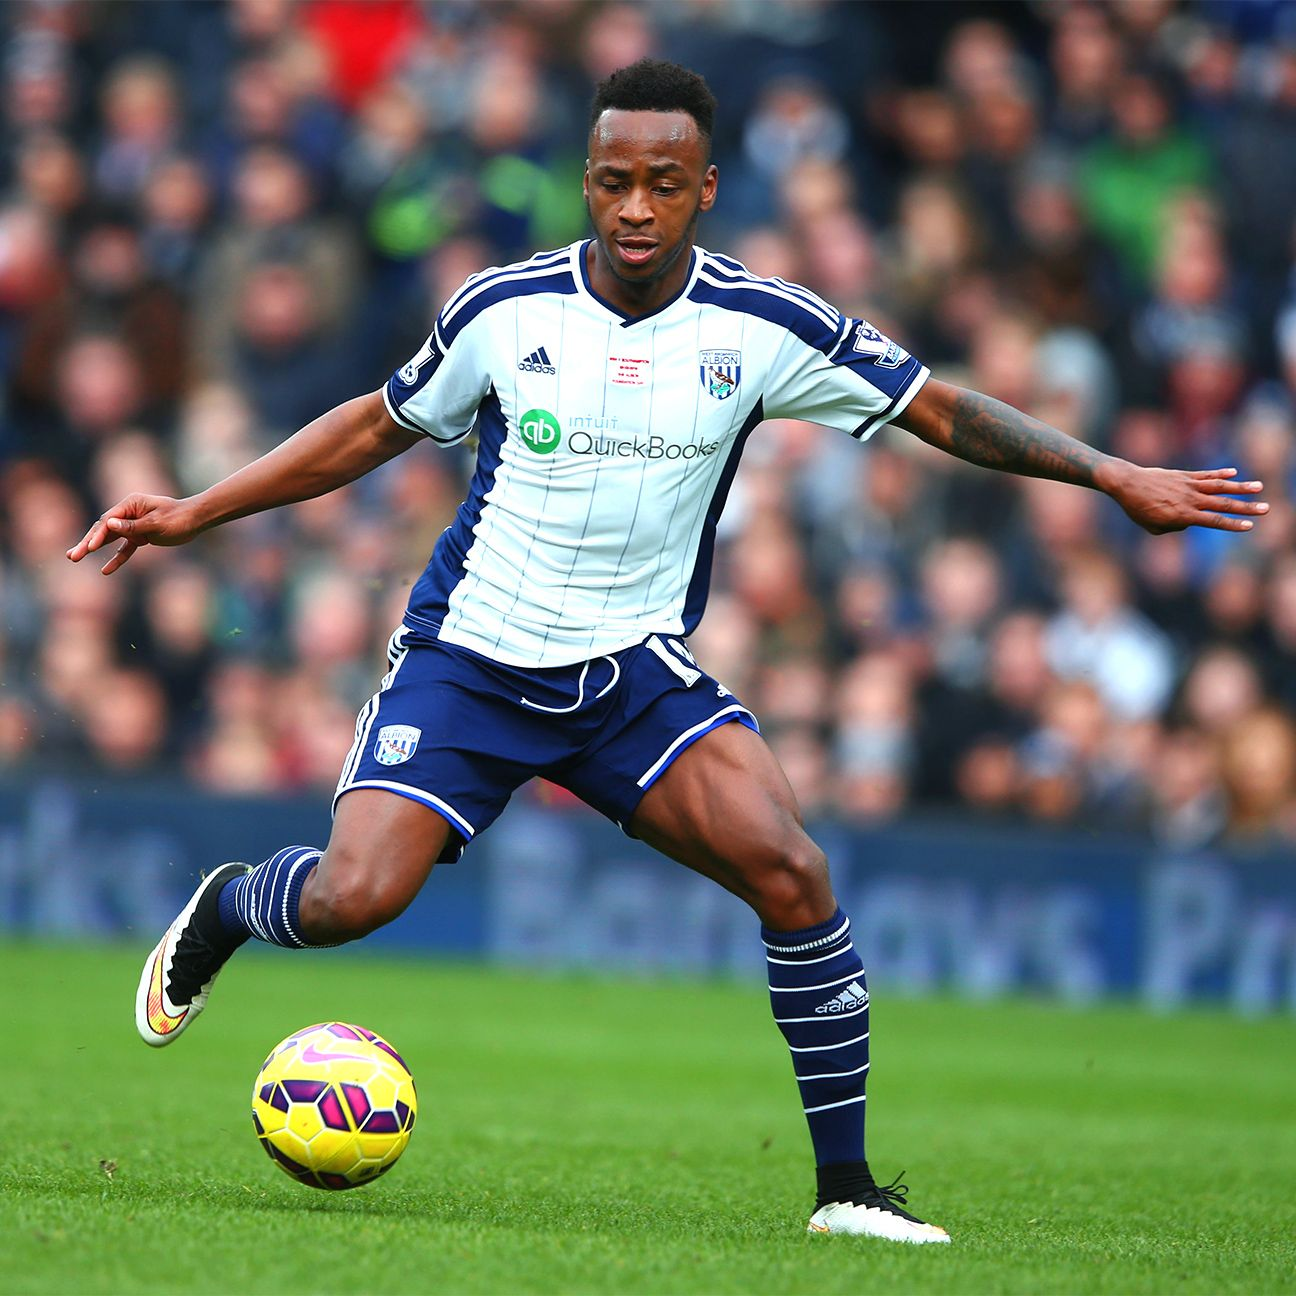 Saido Berahino's 11 Premier League goals have proved vital for West Brom this season.